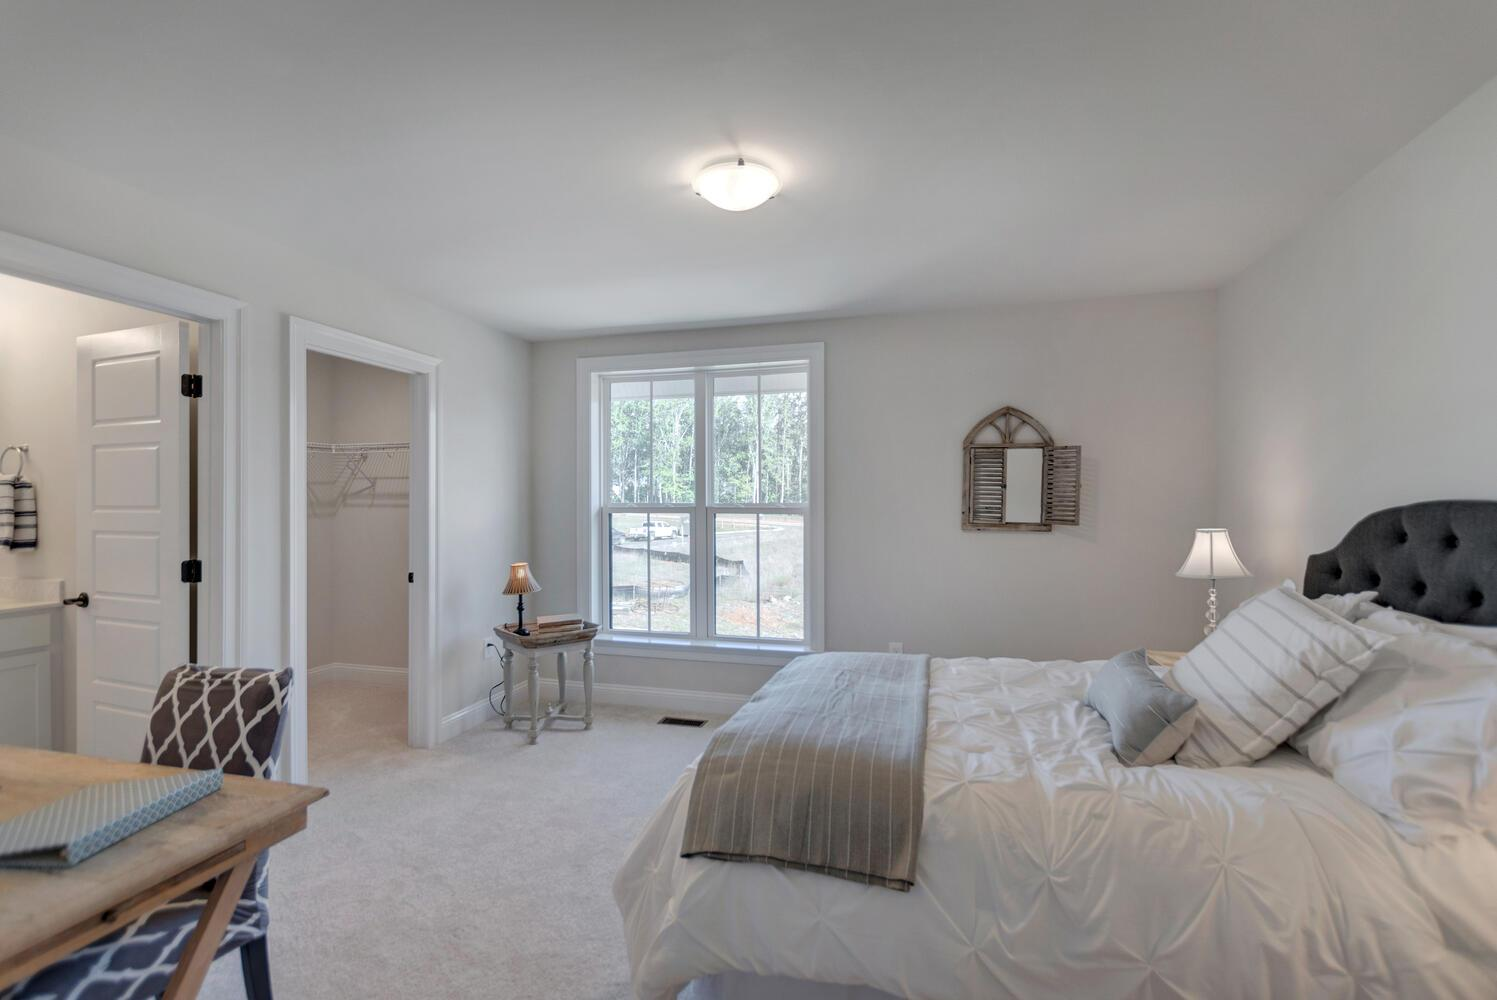 Bedroom featured in The Mechum By Craig Builders in Charlottesville, VA